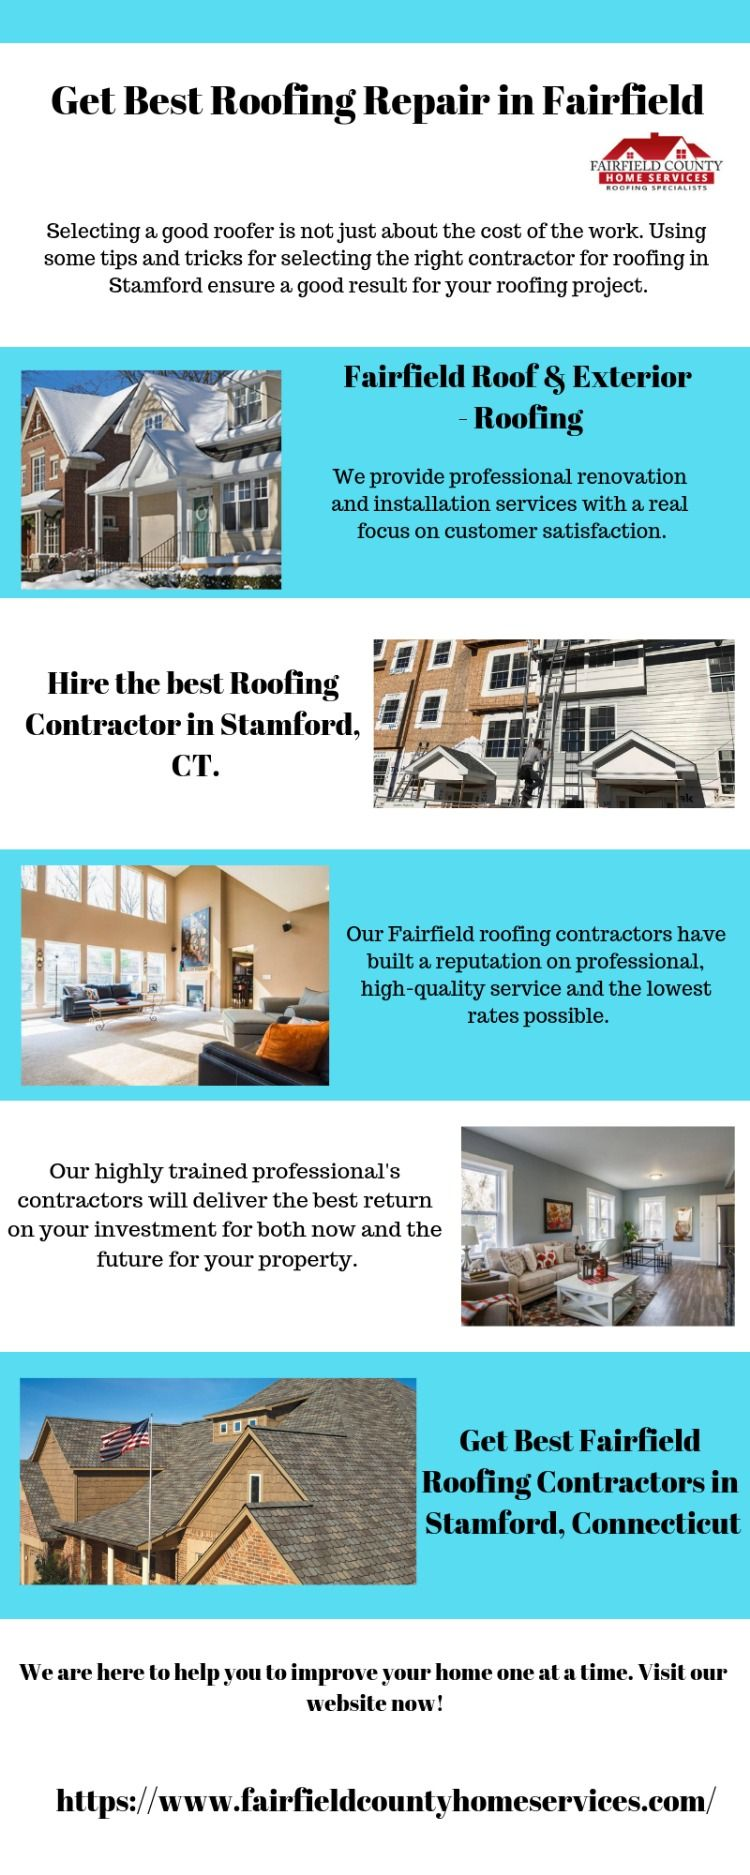 If You Want To Find A Contractor To Repair Your Roof We Provide The Best Roofing Service In Fairfield Ct For All O Roofing Specialists Roofing Contractors Cool Roof